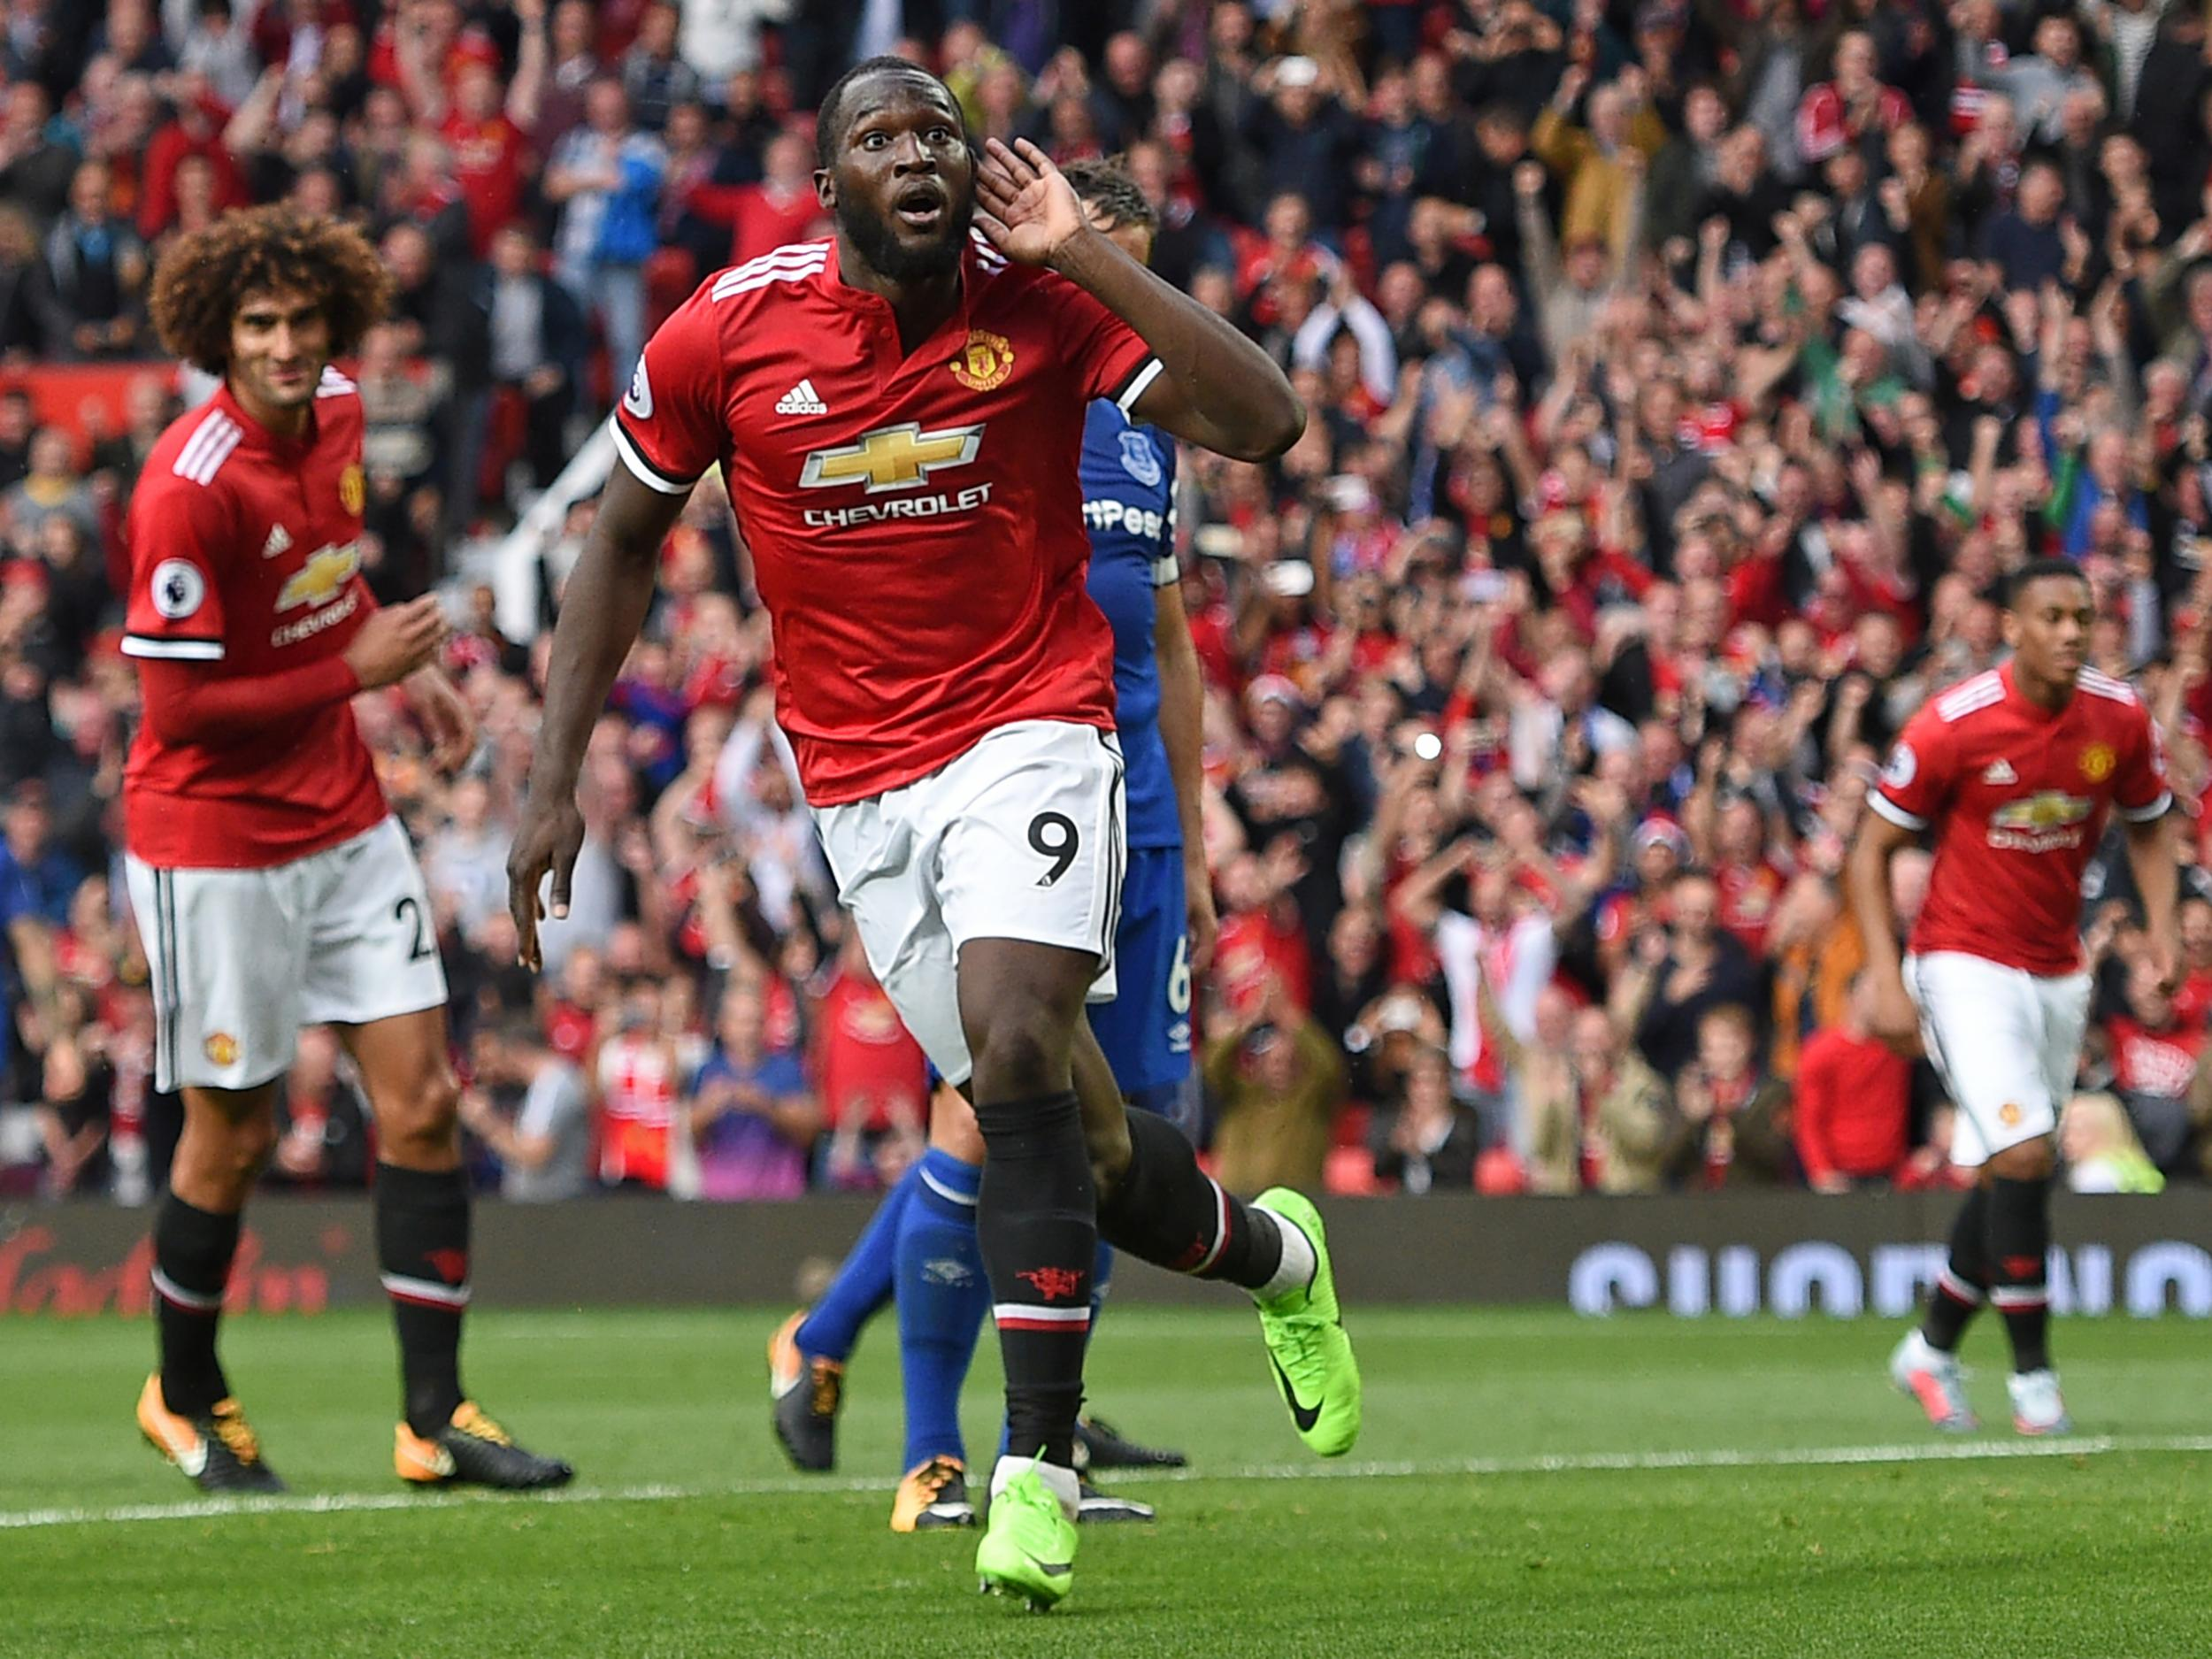 Romelu Lukaku asks Manchester United fans to 'move on' from racist song